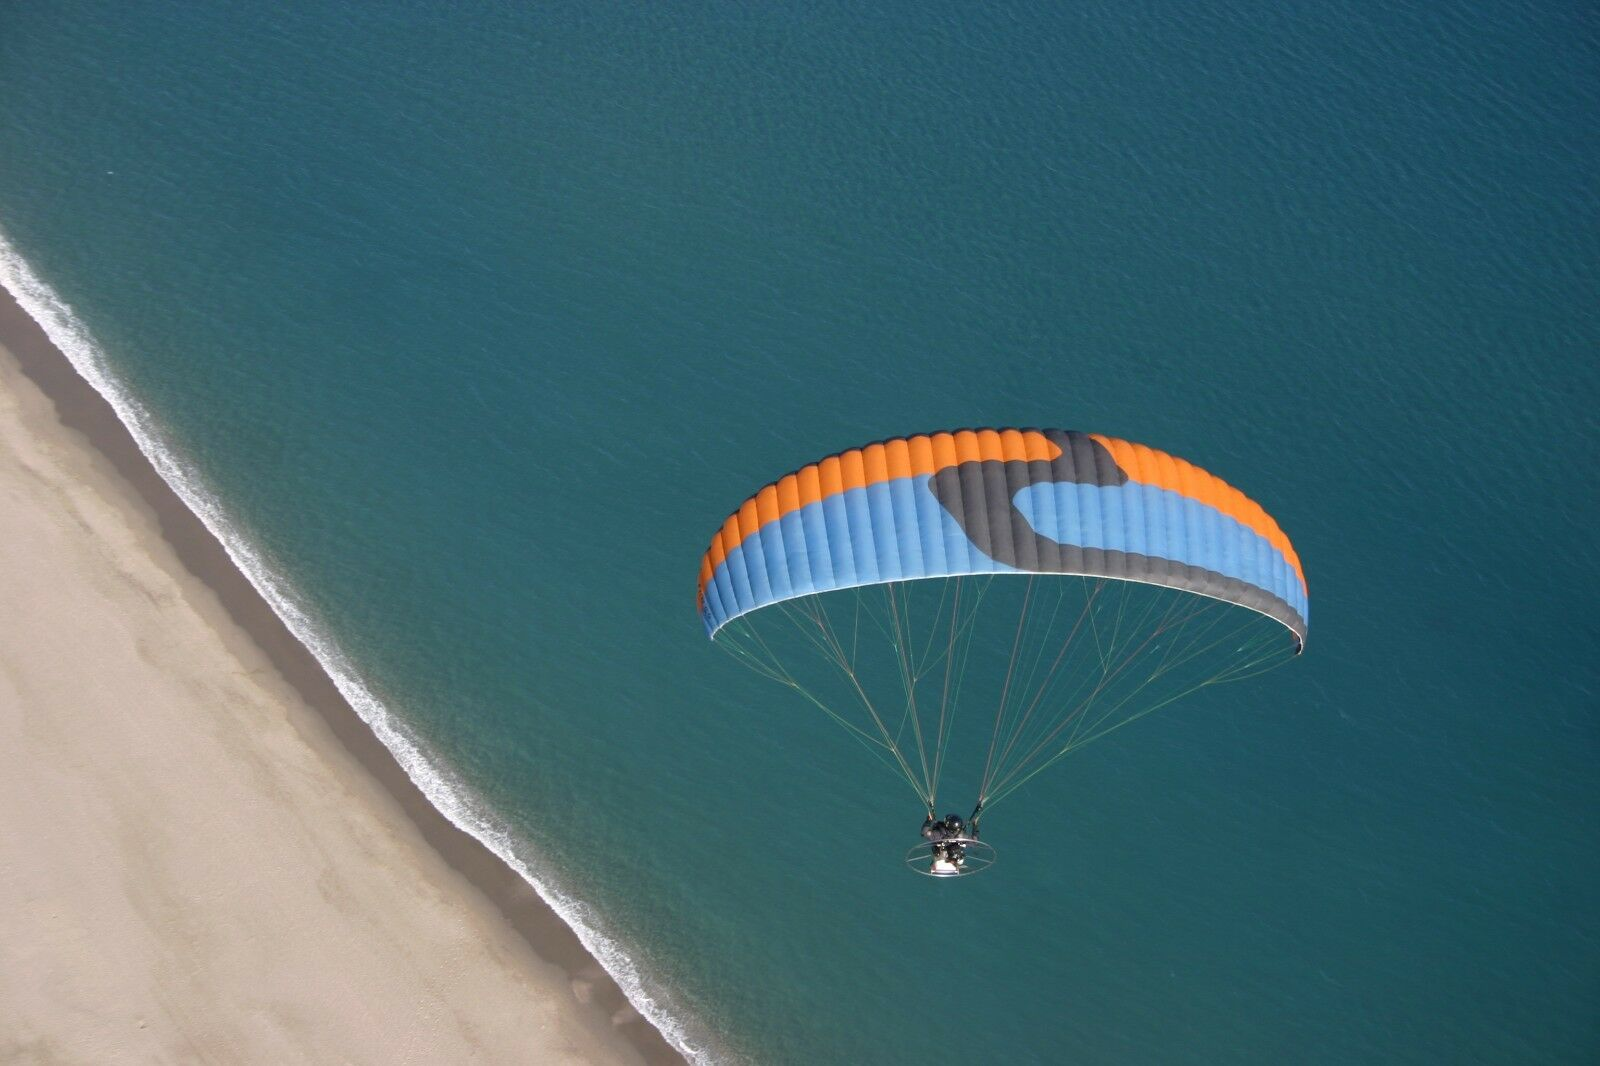 10 Day BEGINNERS PARAMOTORING COURSE IN SPAIN WITH BHPA SCHOOL